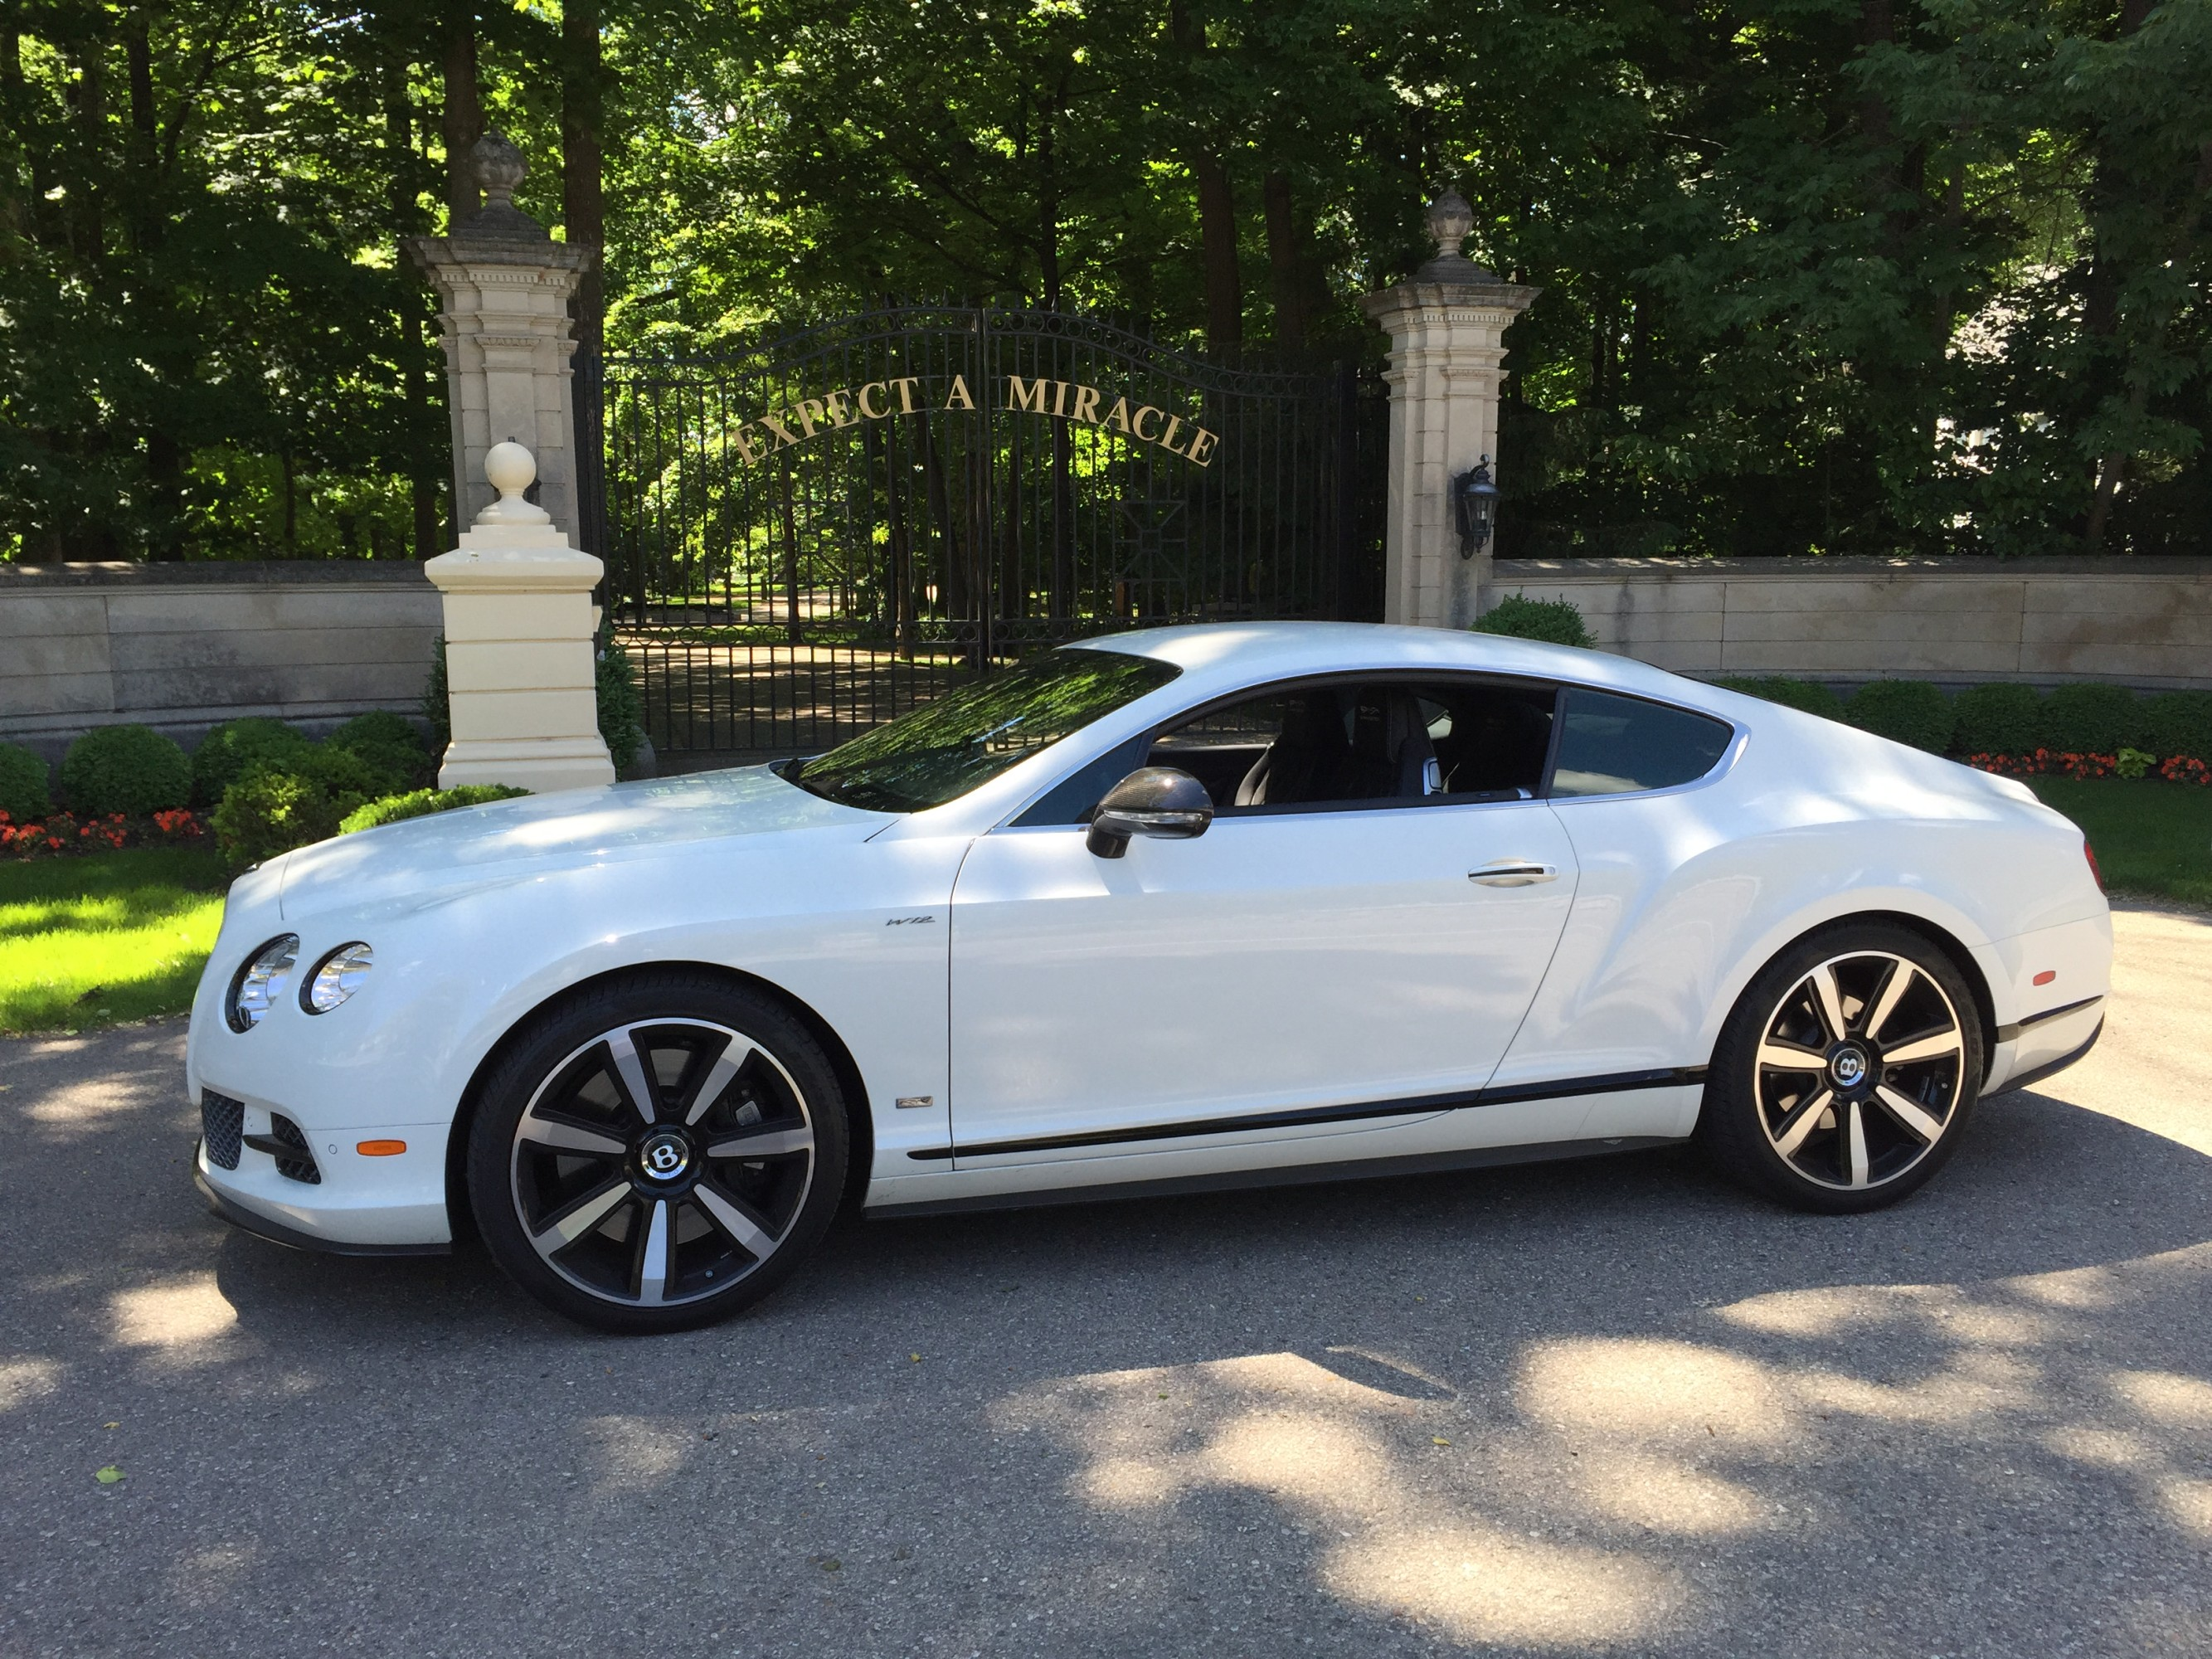 Bentley Continental GT – Brian's Autos